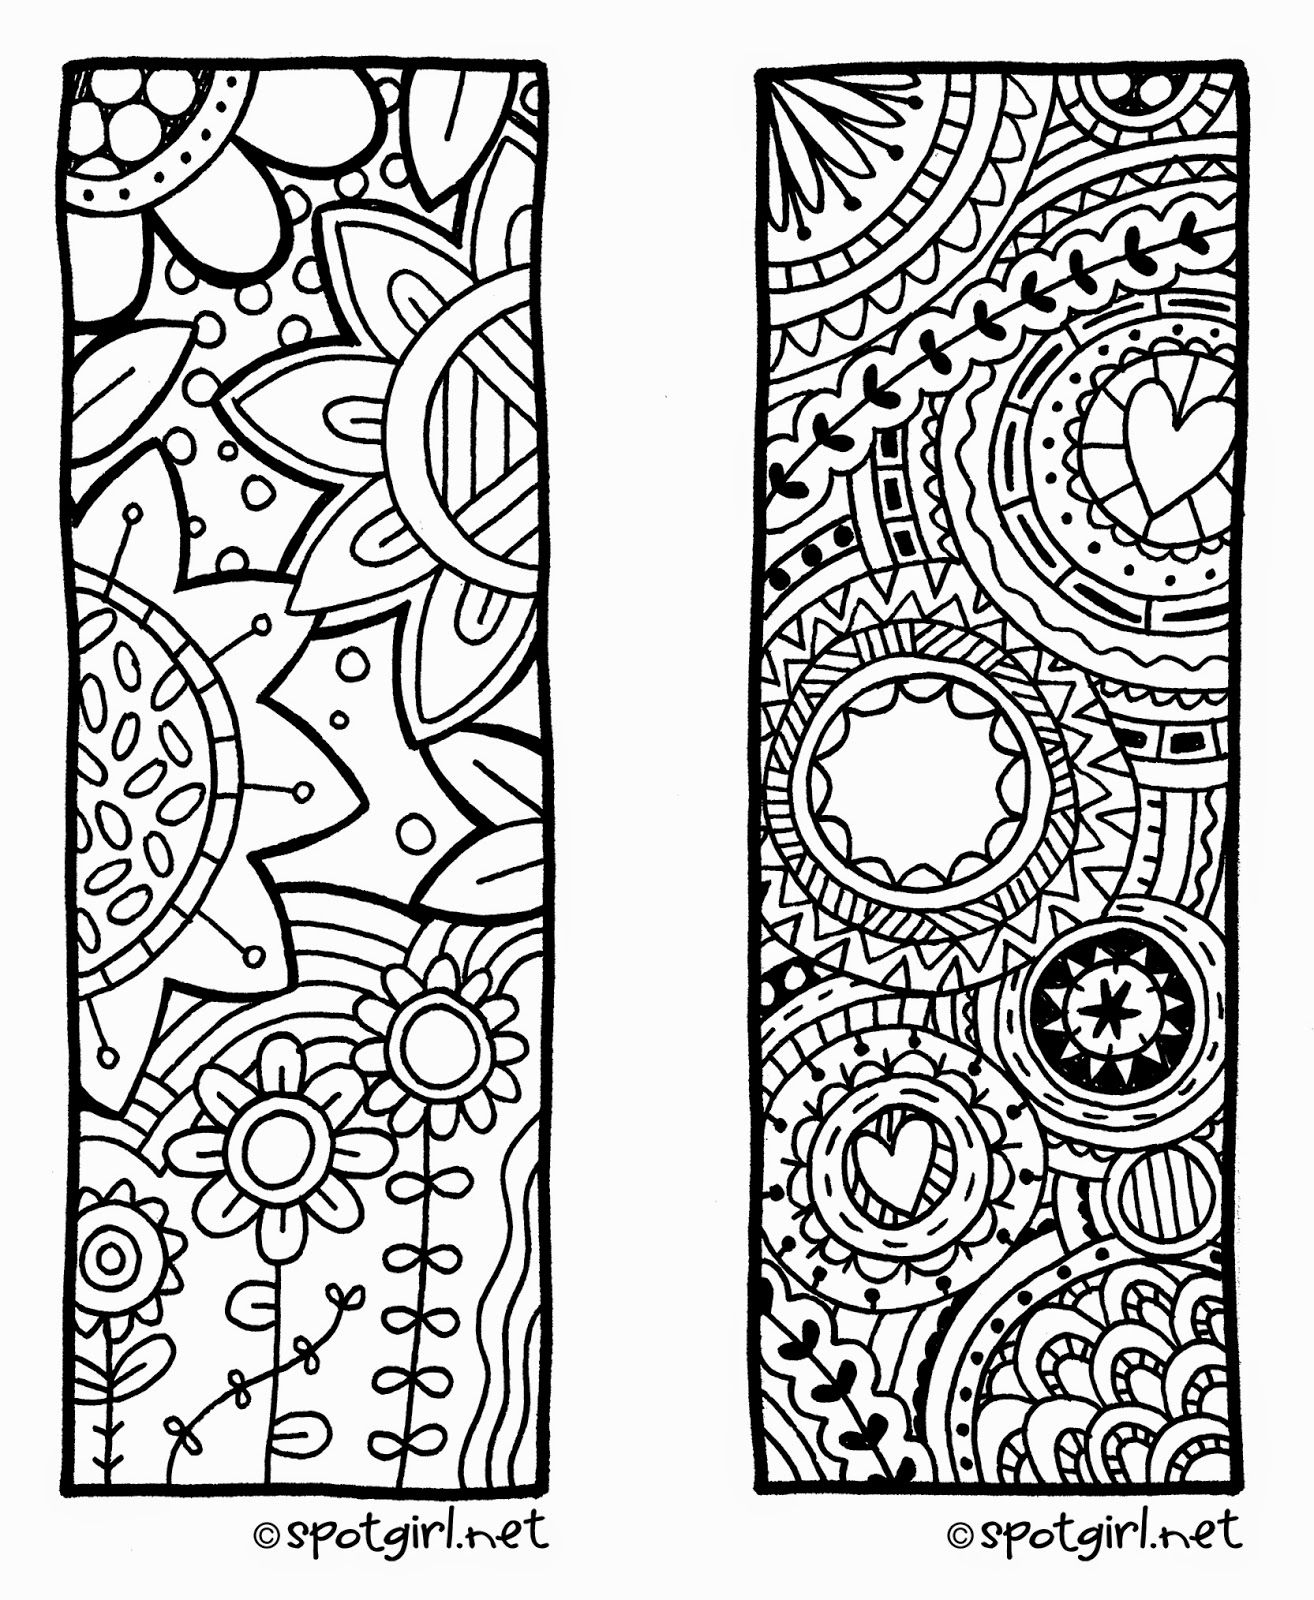 Zentangle Bookmark Printable From Spotgirl Hotcakes Blogspot Com Coloring Bookmarks Free Printable Bookmarks Templates Book Markers